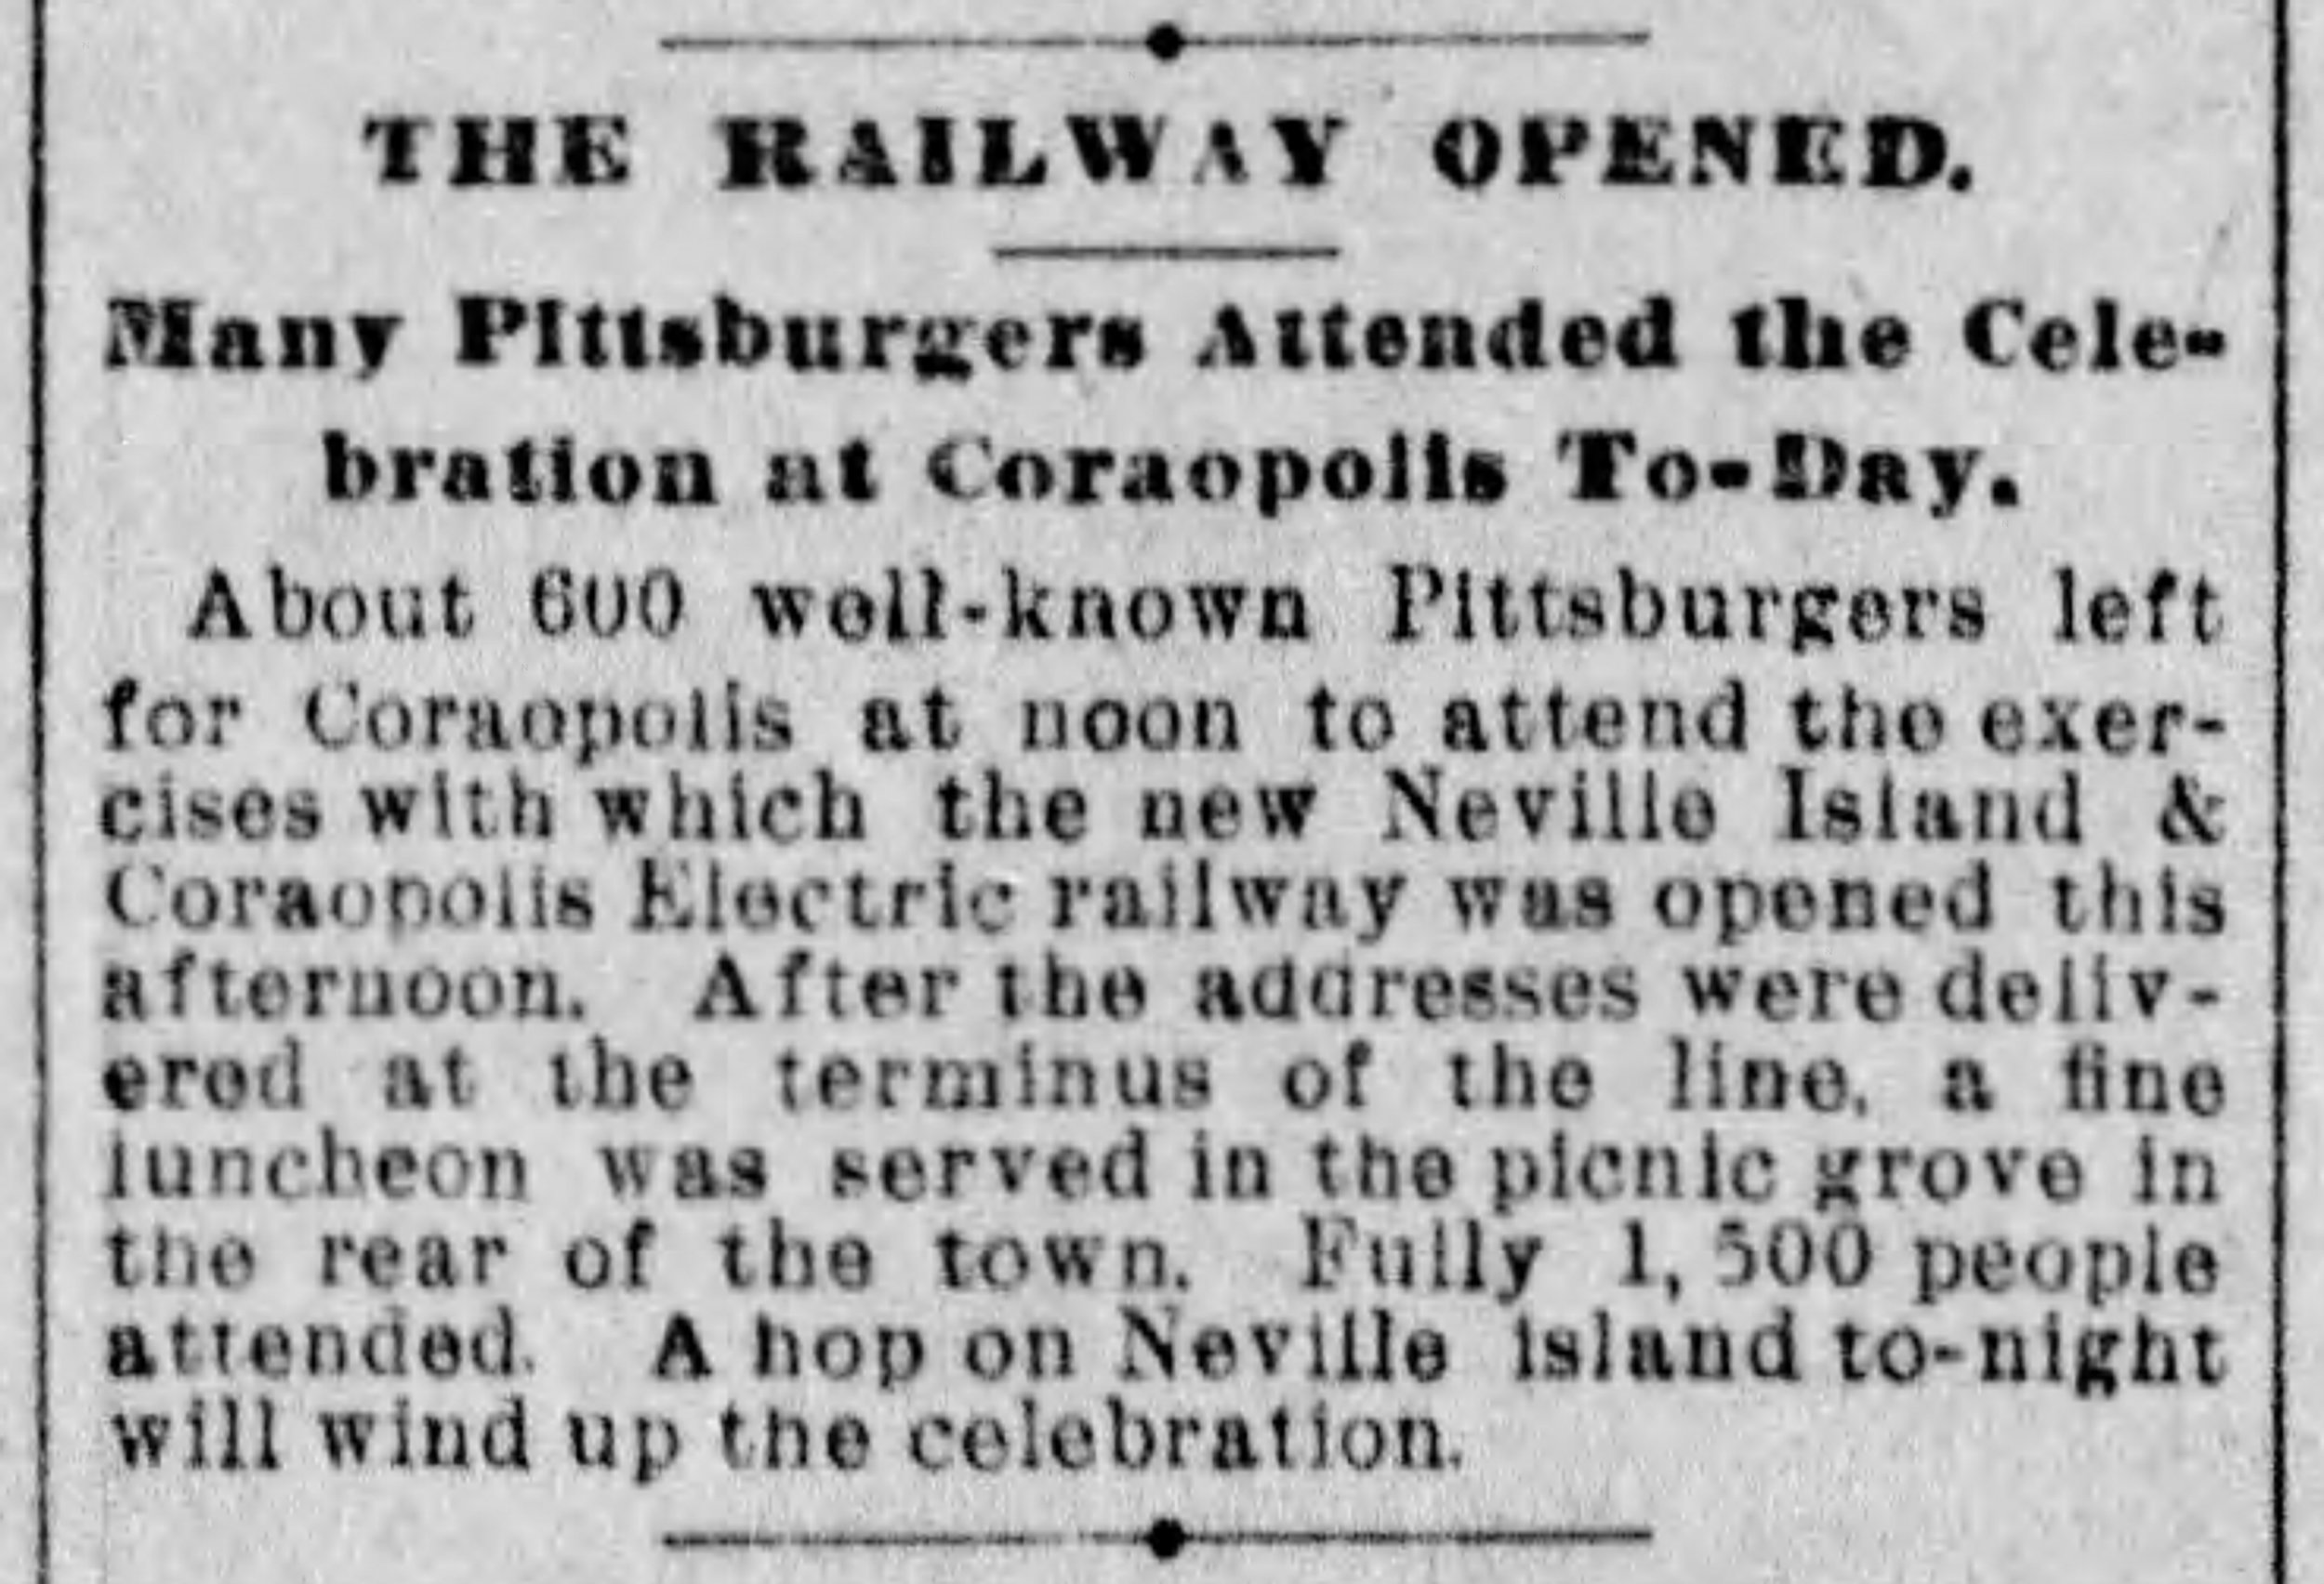 1894-07-26 The_Pittsburg_Press (v11, n204, p4).jpg